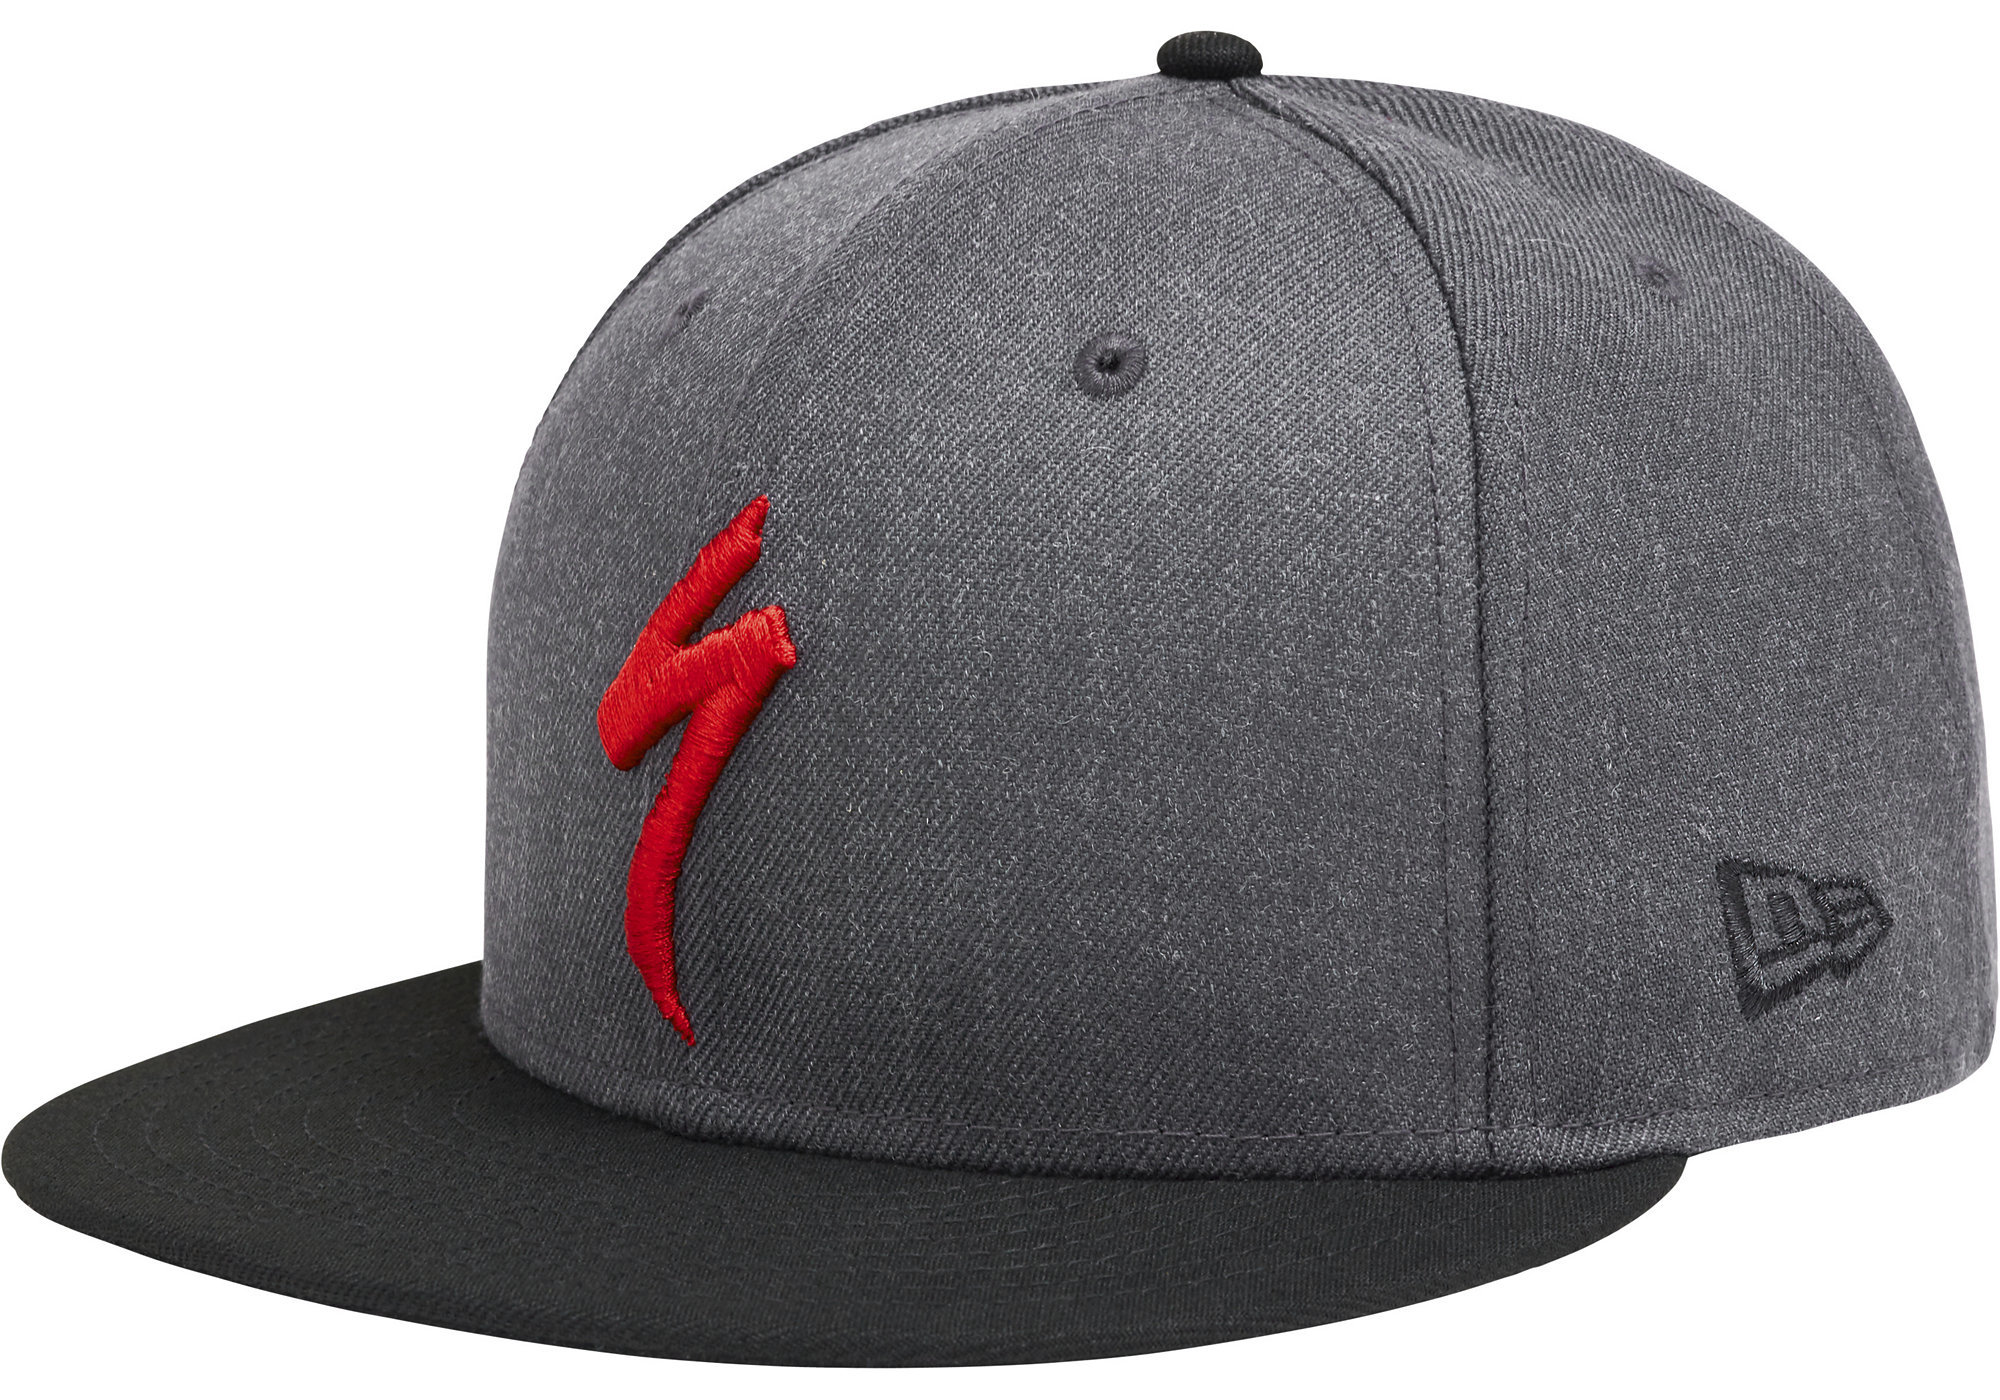 ecc000fc38b80f Specialized Specialized New Era 9Fifty Snapback Hat - Las Vegas ...